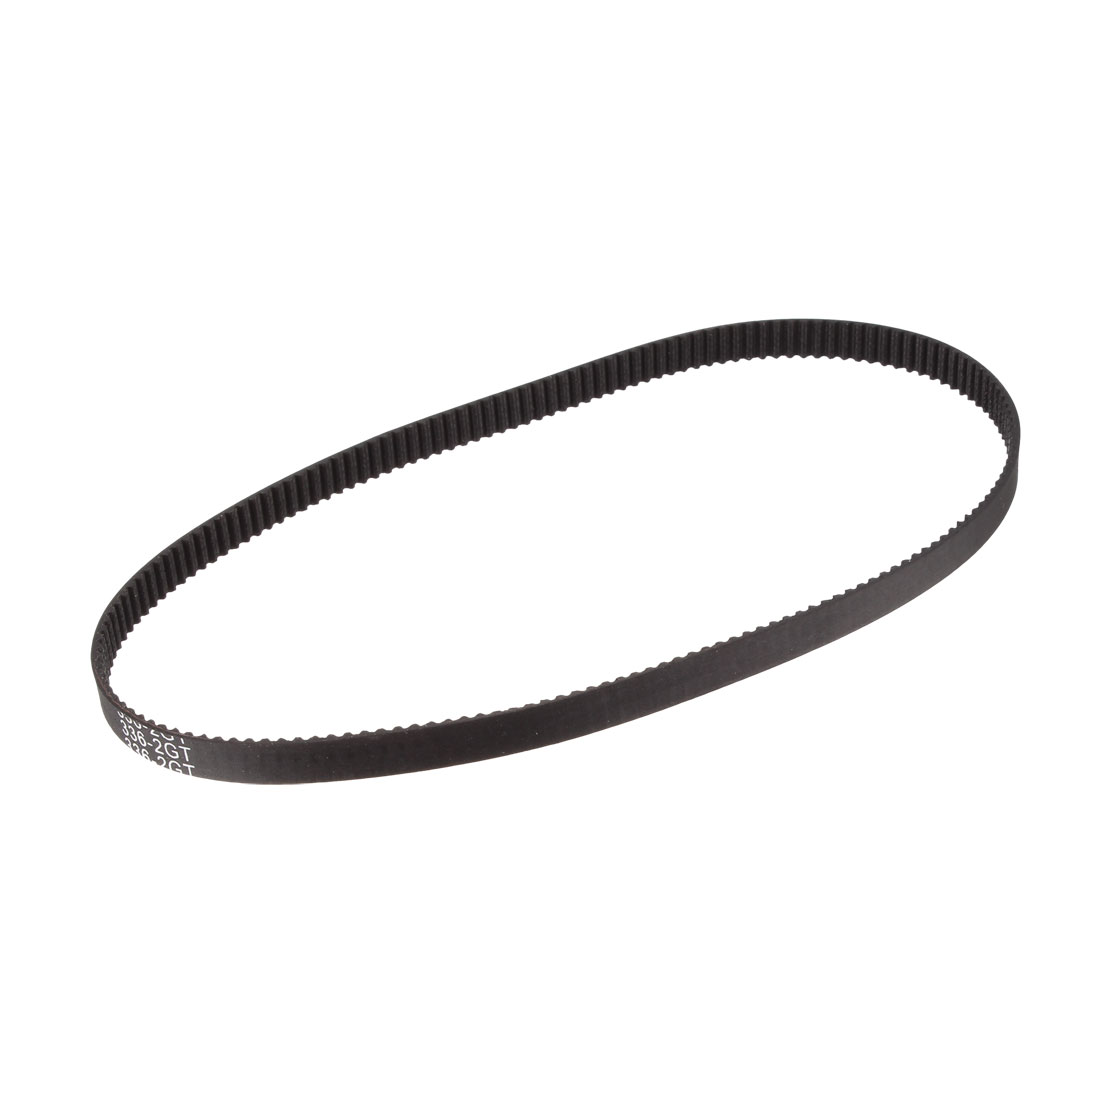 GT2 Timing Belt 336mm Closed Fit Synchronous Wheel for 3D Printer